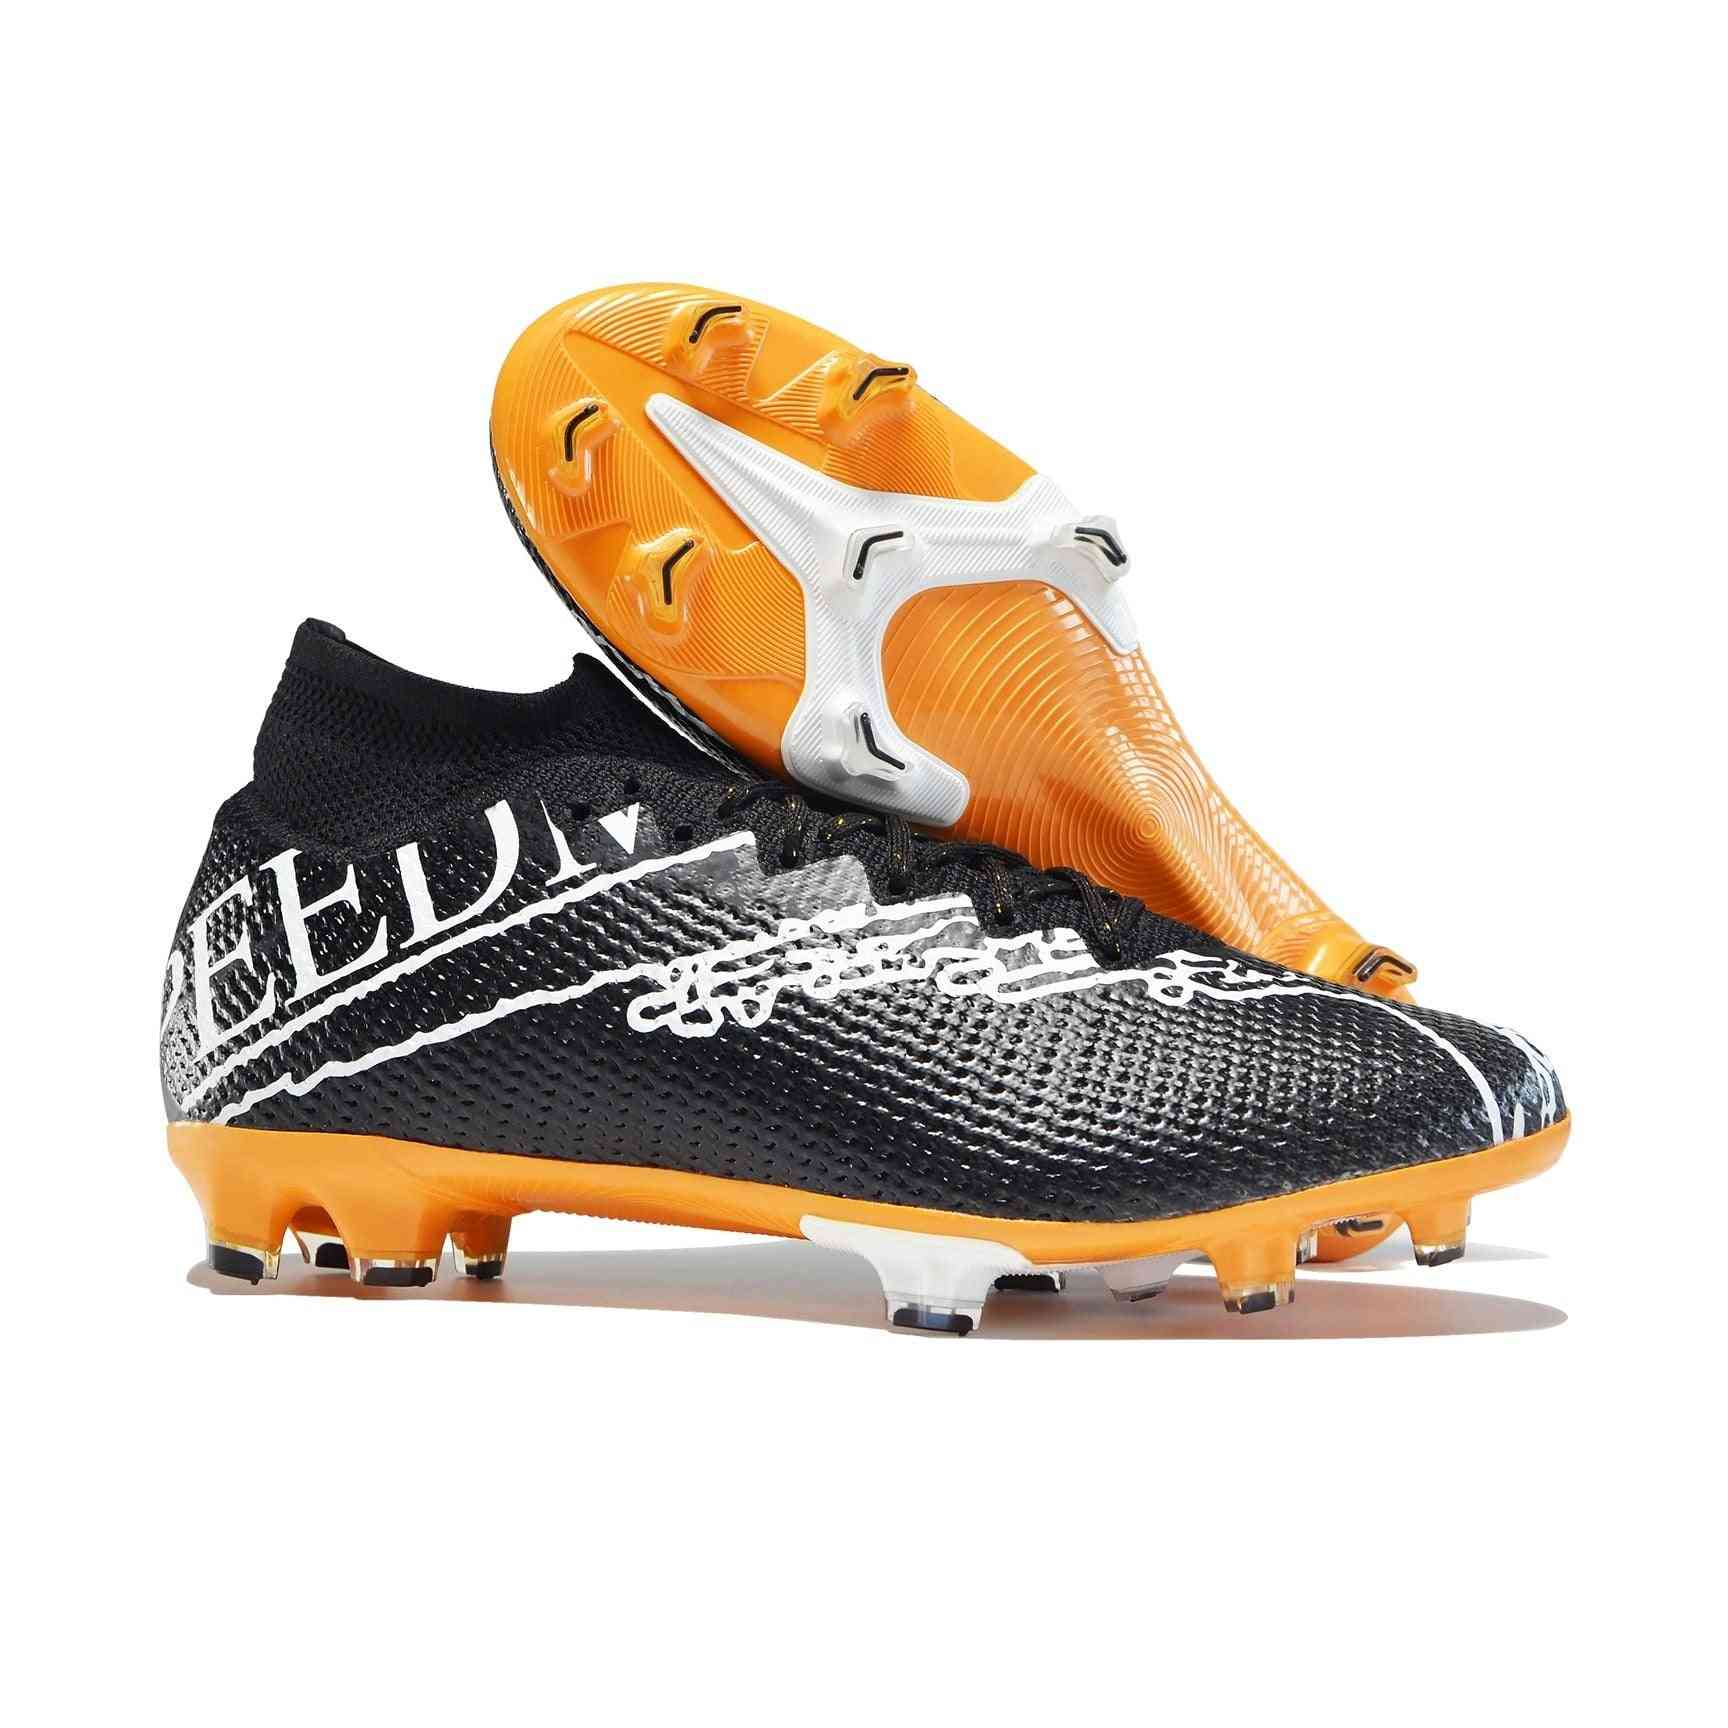 Football Training Professional Soccer Cleats High Ankle Sport Shoes